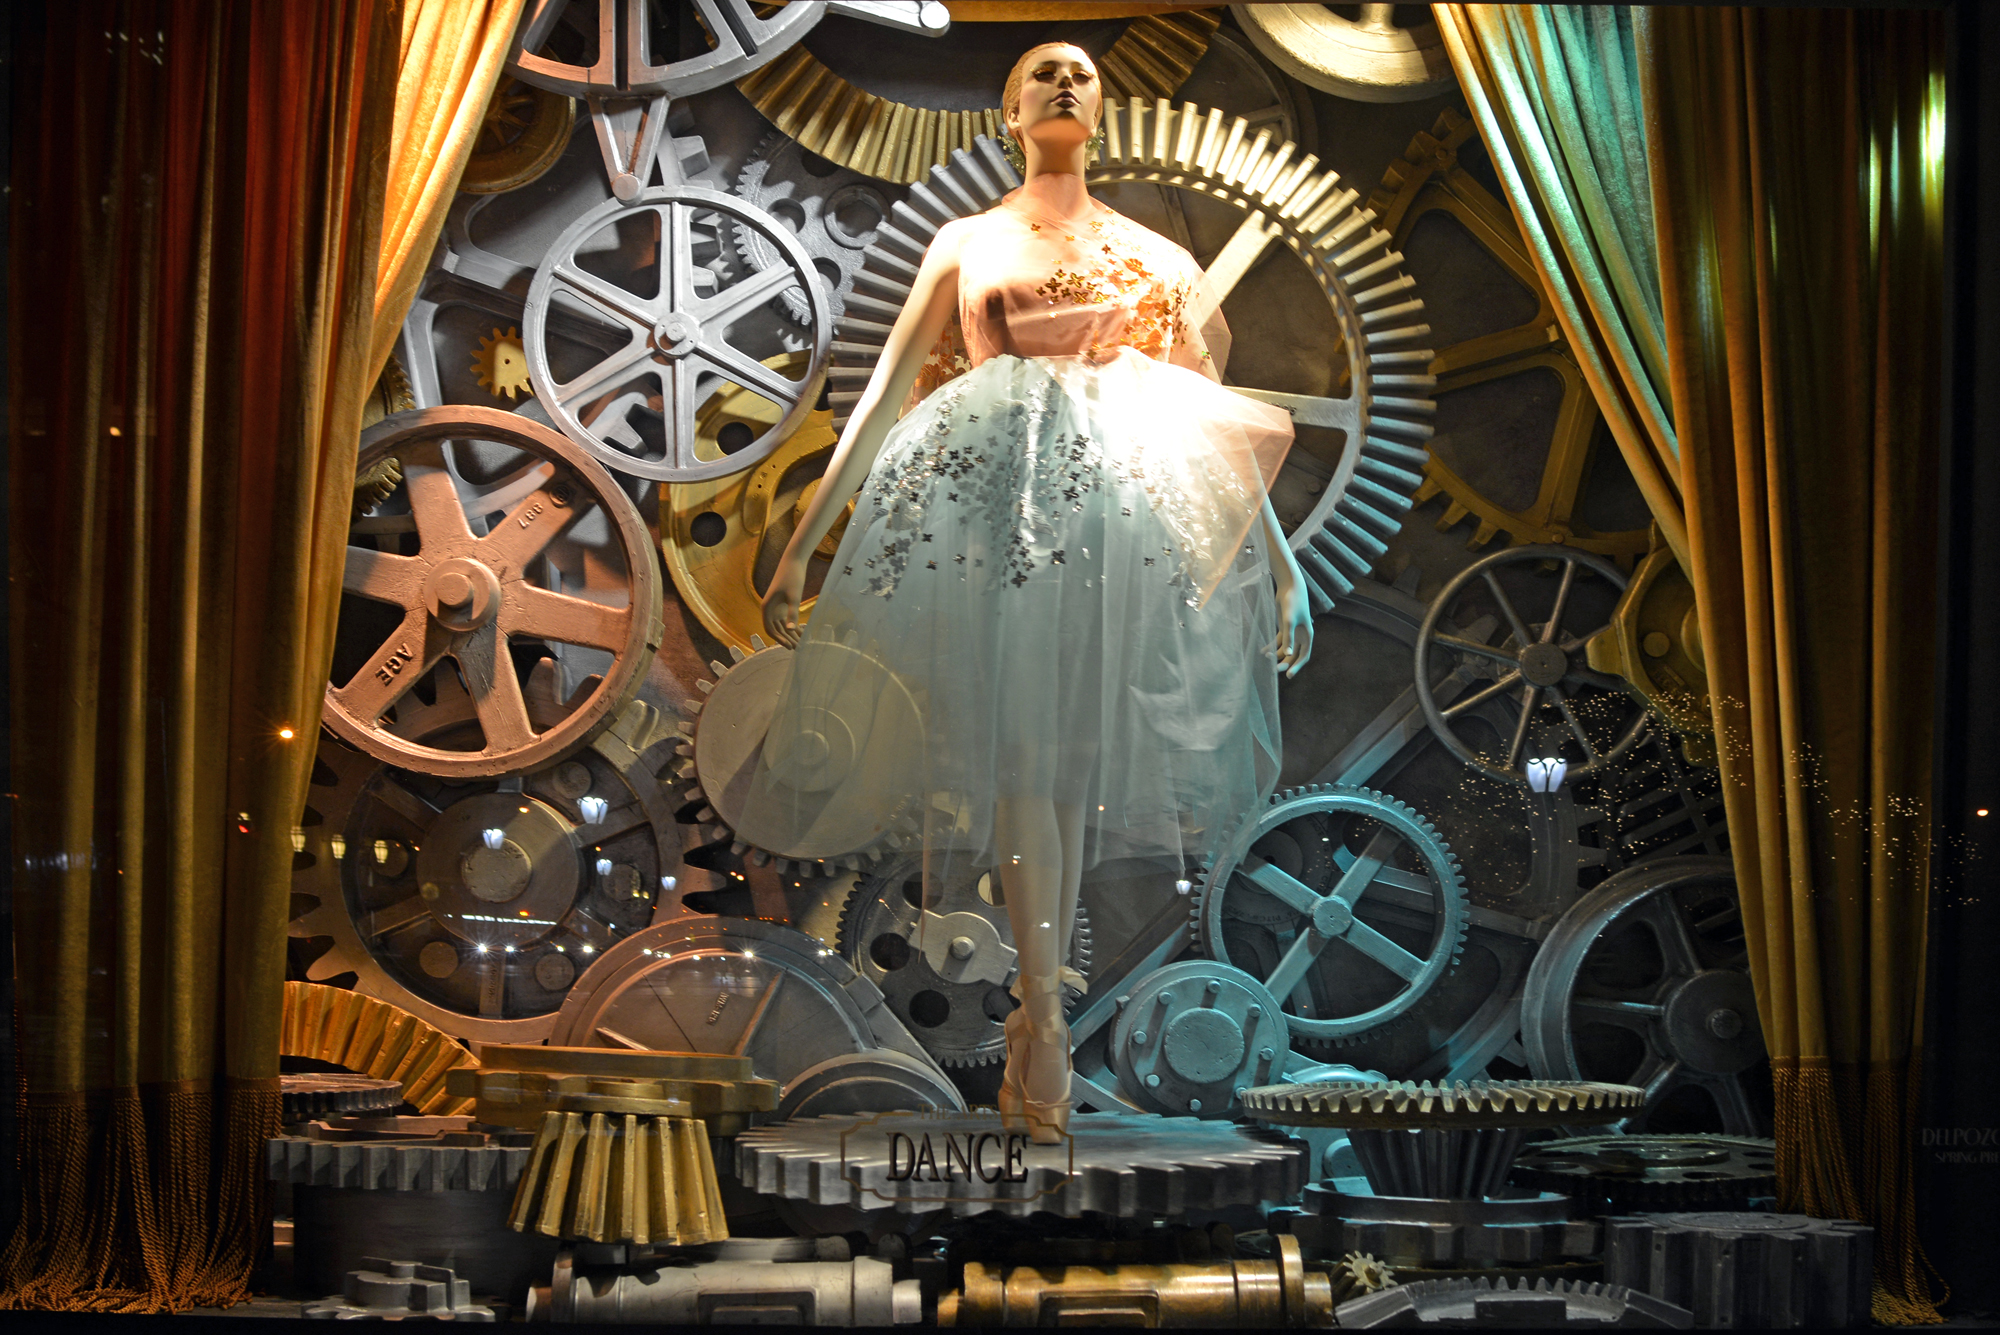 Bergdorf Goodman Window Display - Dance   | Lauren Caron © 2014